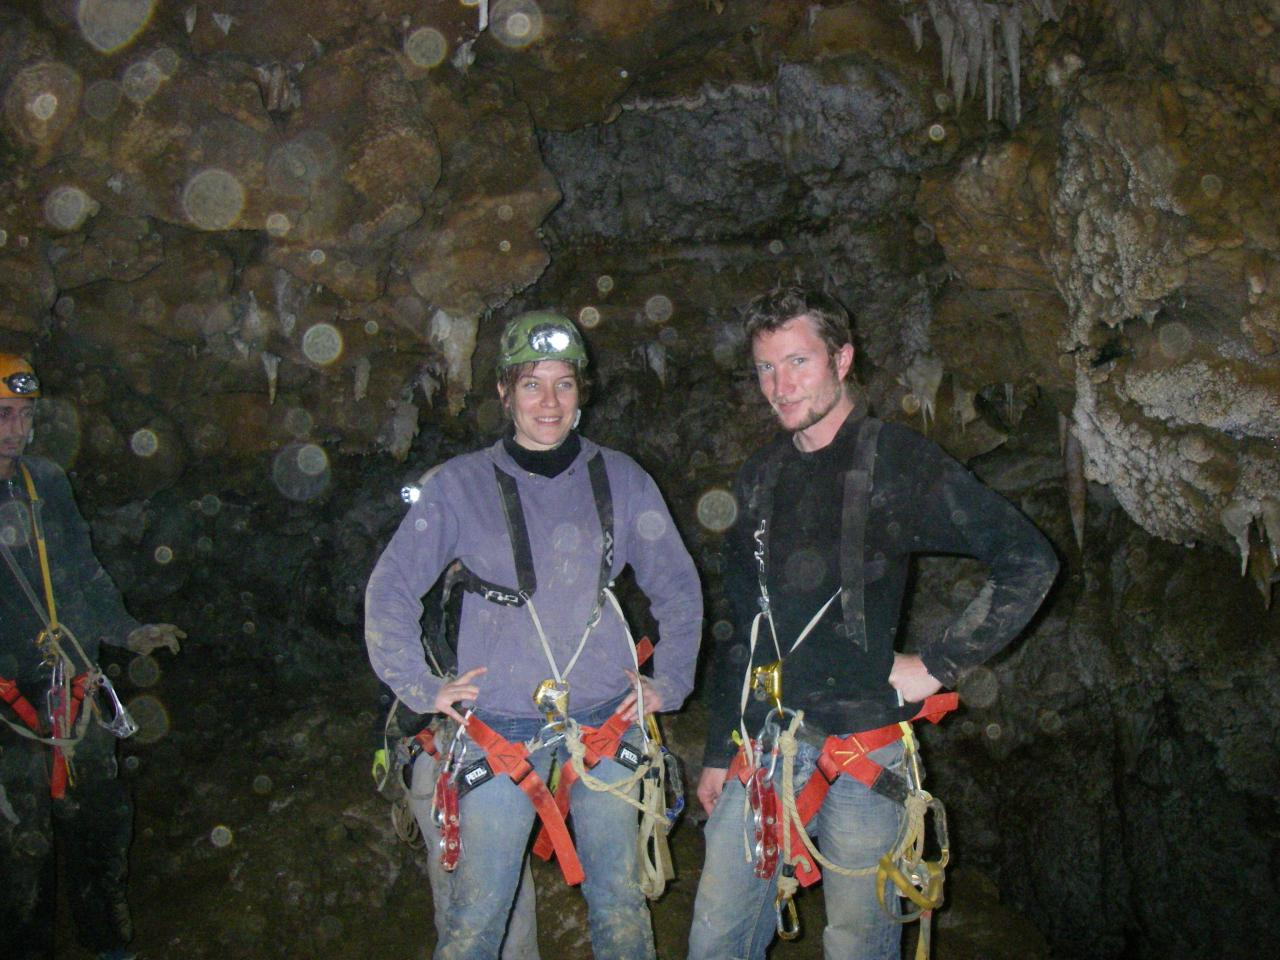 initiation à la spéléologie grotte de saint eucher